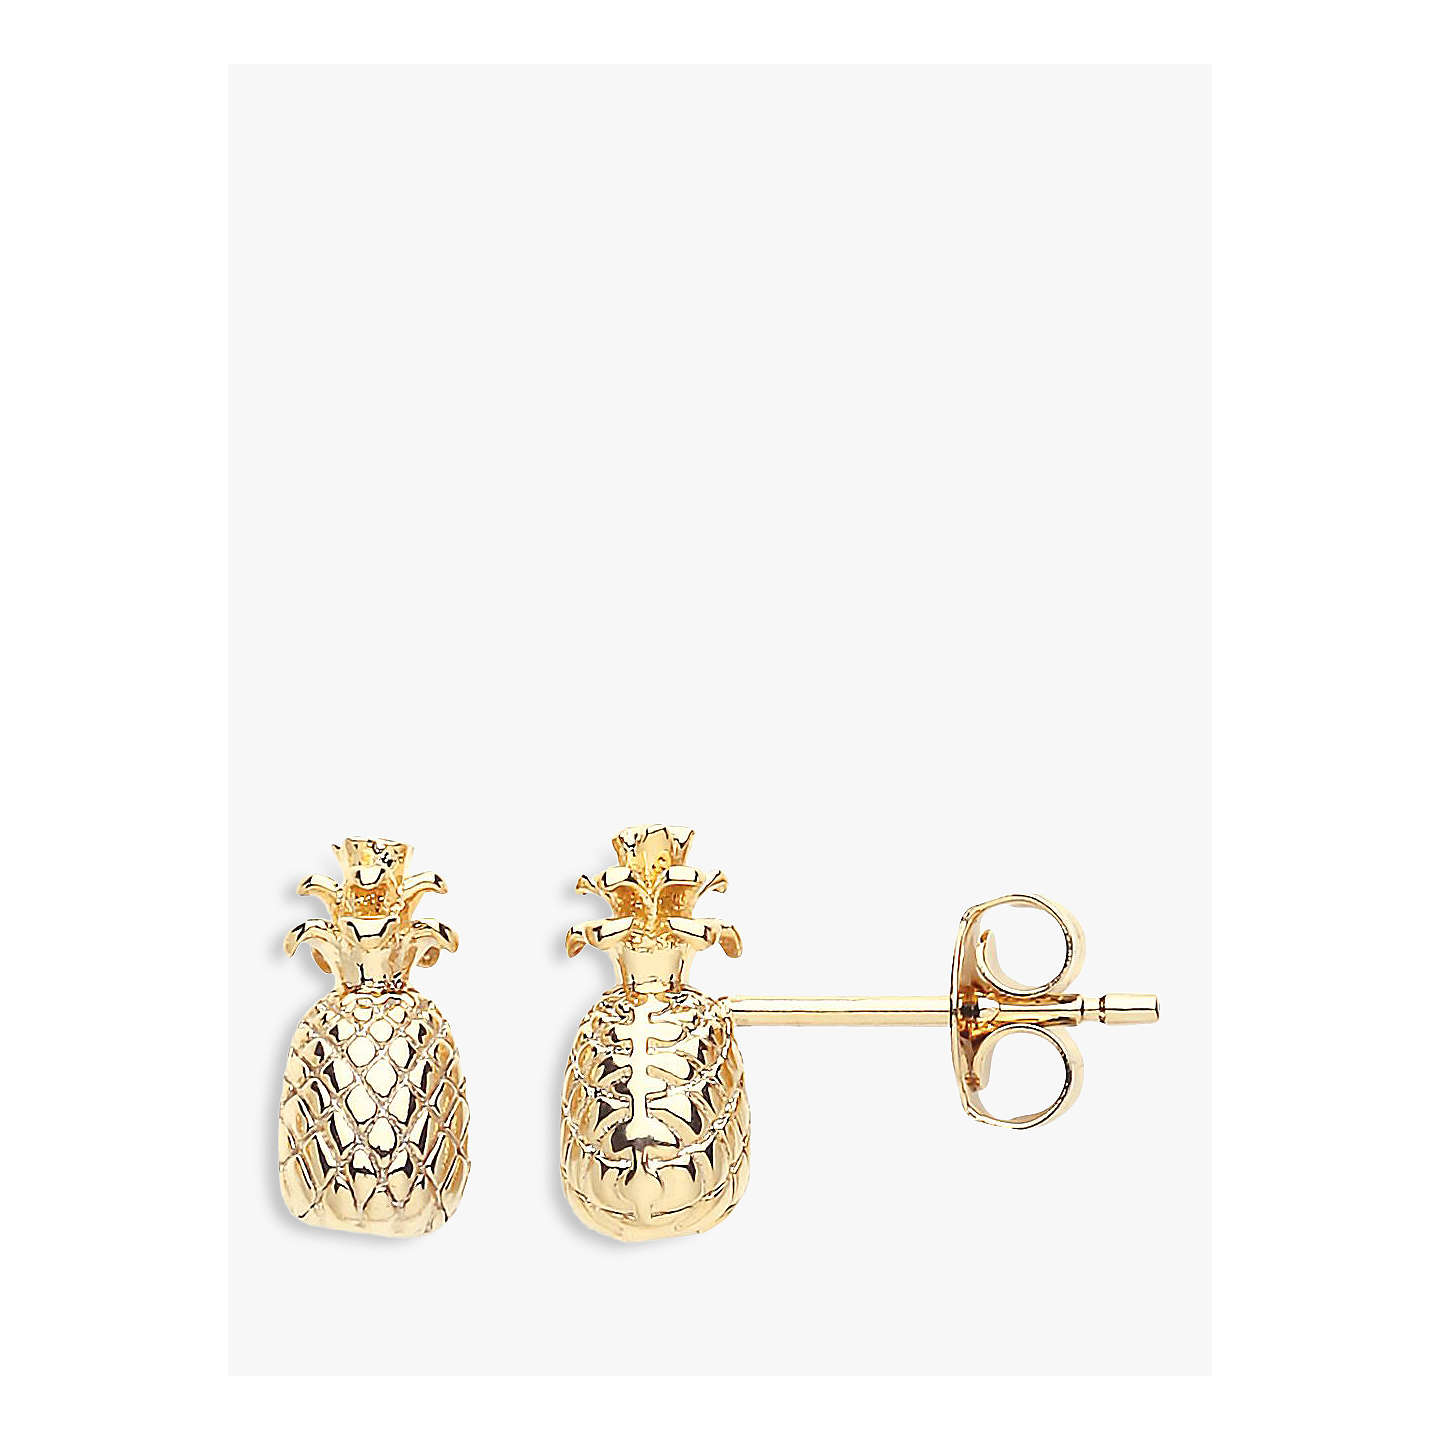 jackson pineapple products earrings stud rachel london